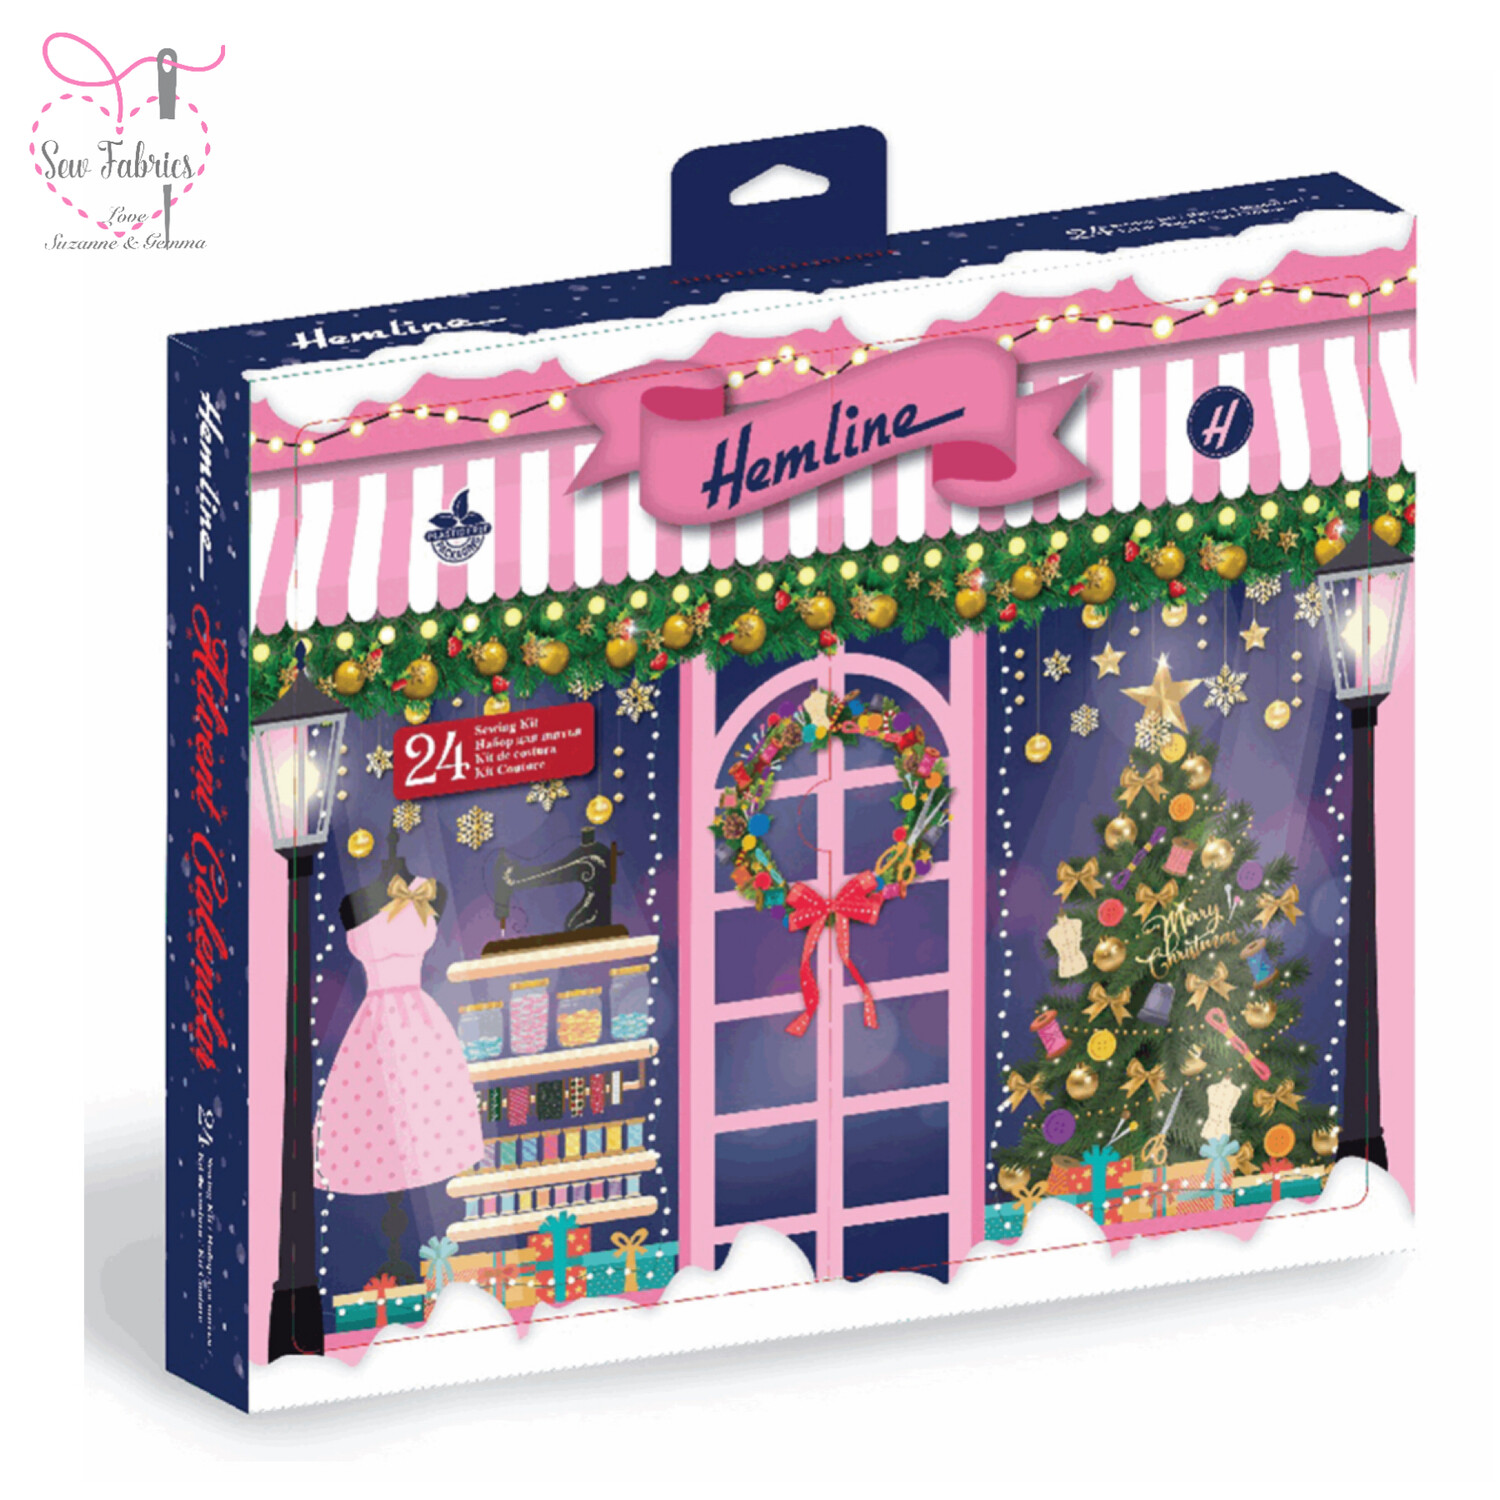 Hemline Advent Calendar With Contents, Christmas Sewing/Quilting Gift